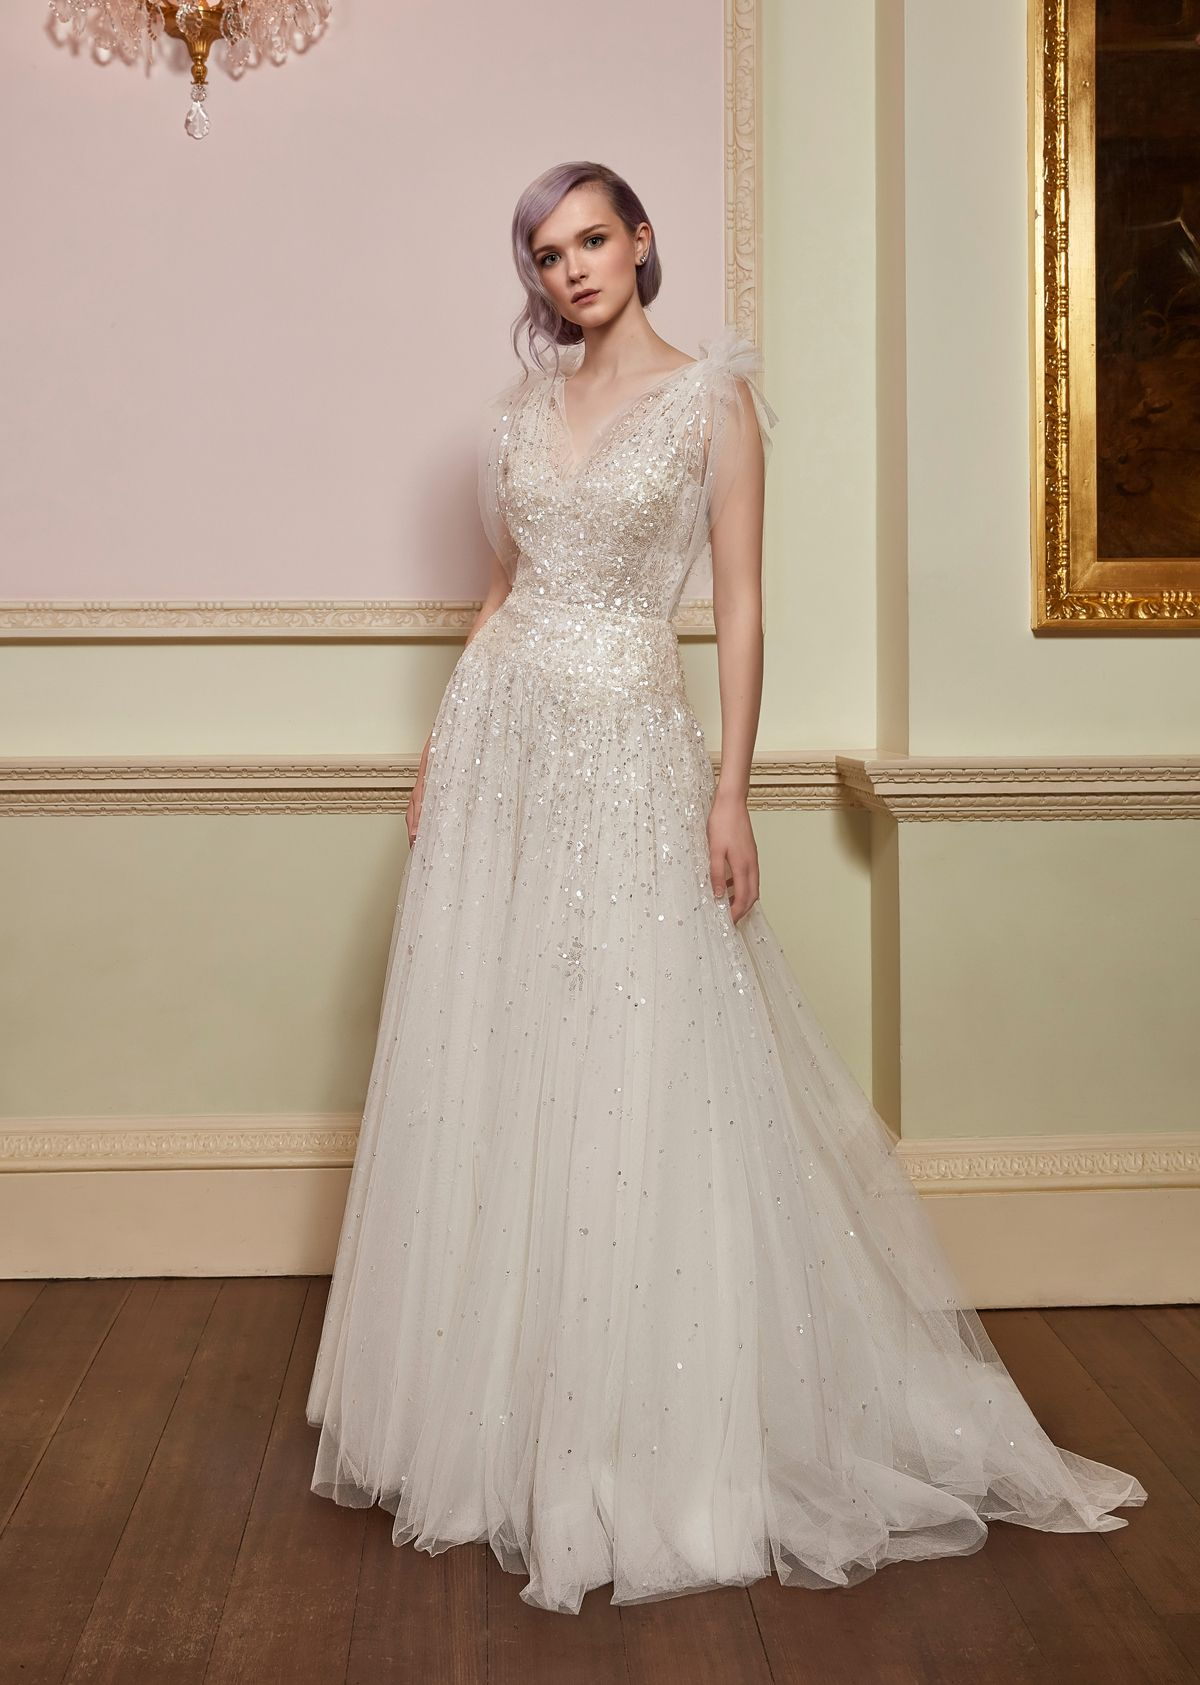 An Exclusive Discount At The Jenny Packham London Flagship Store